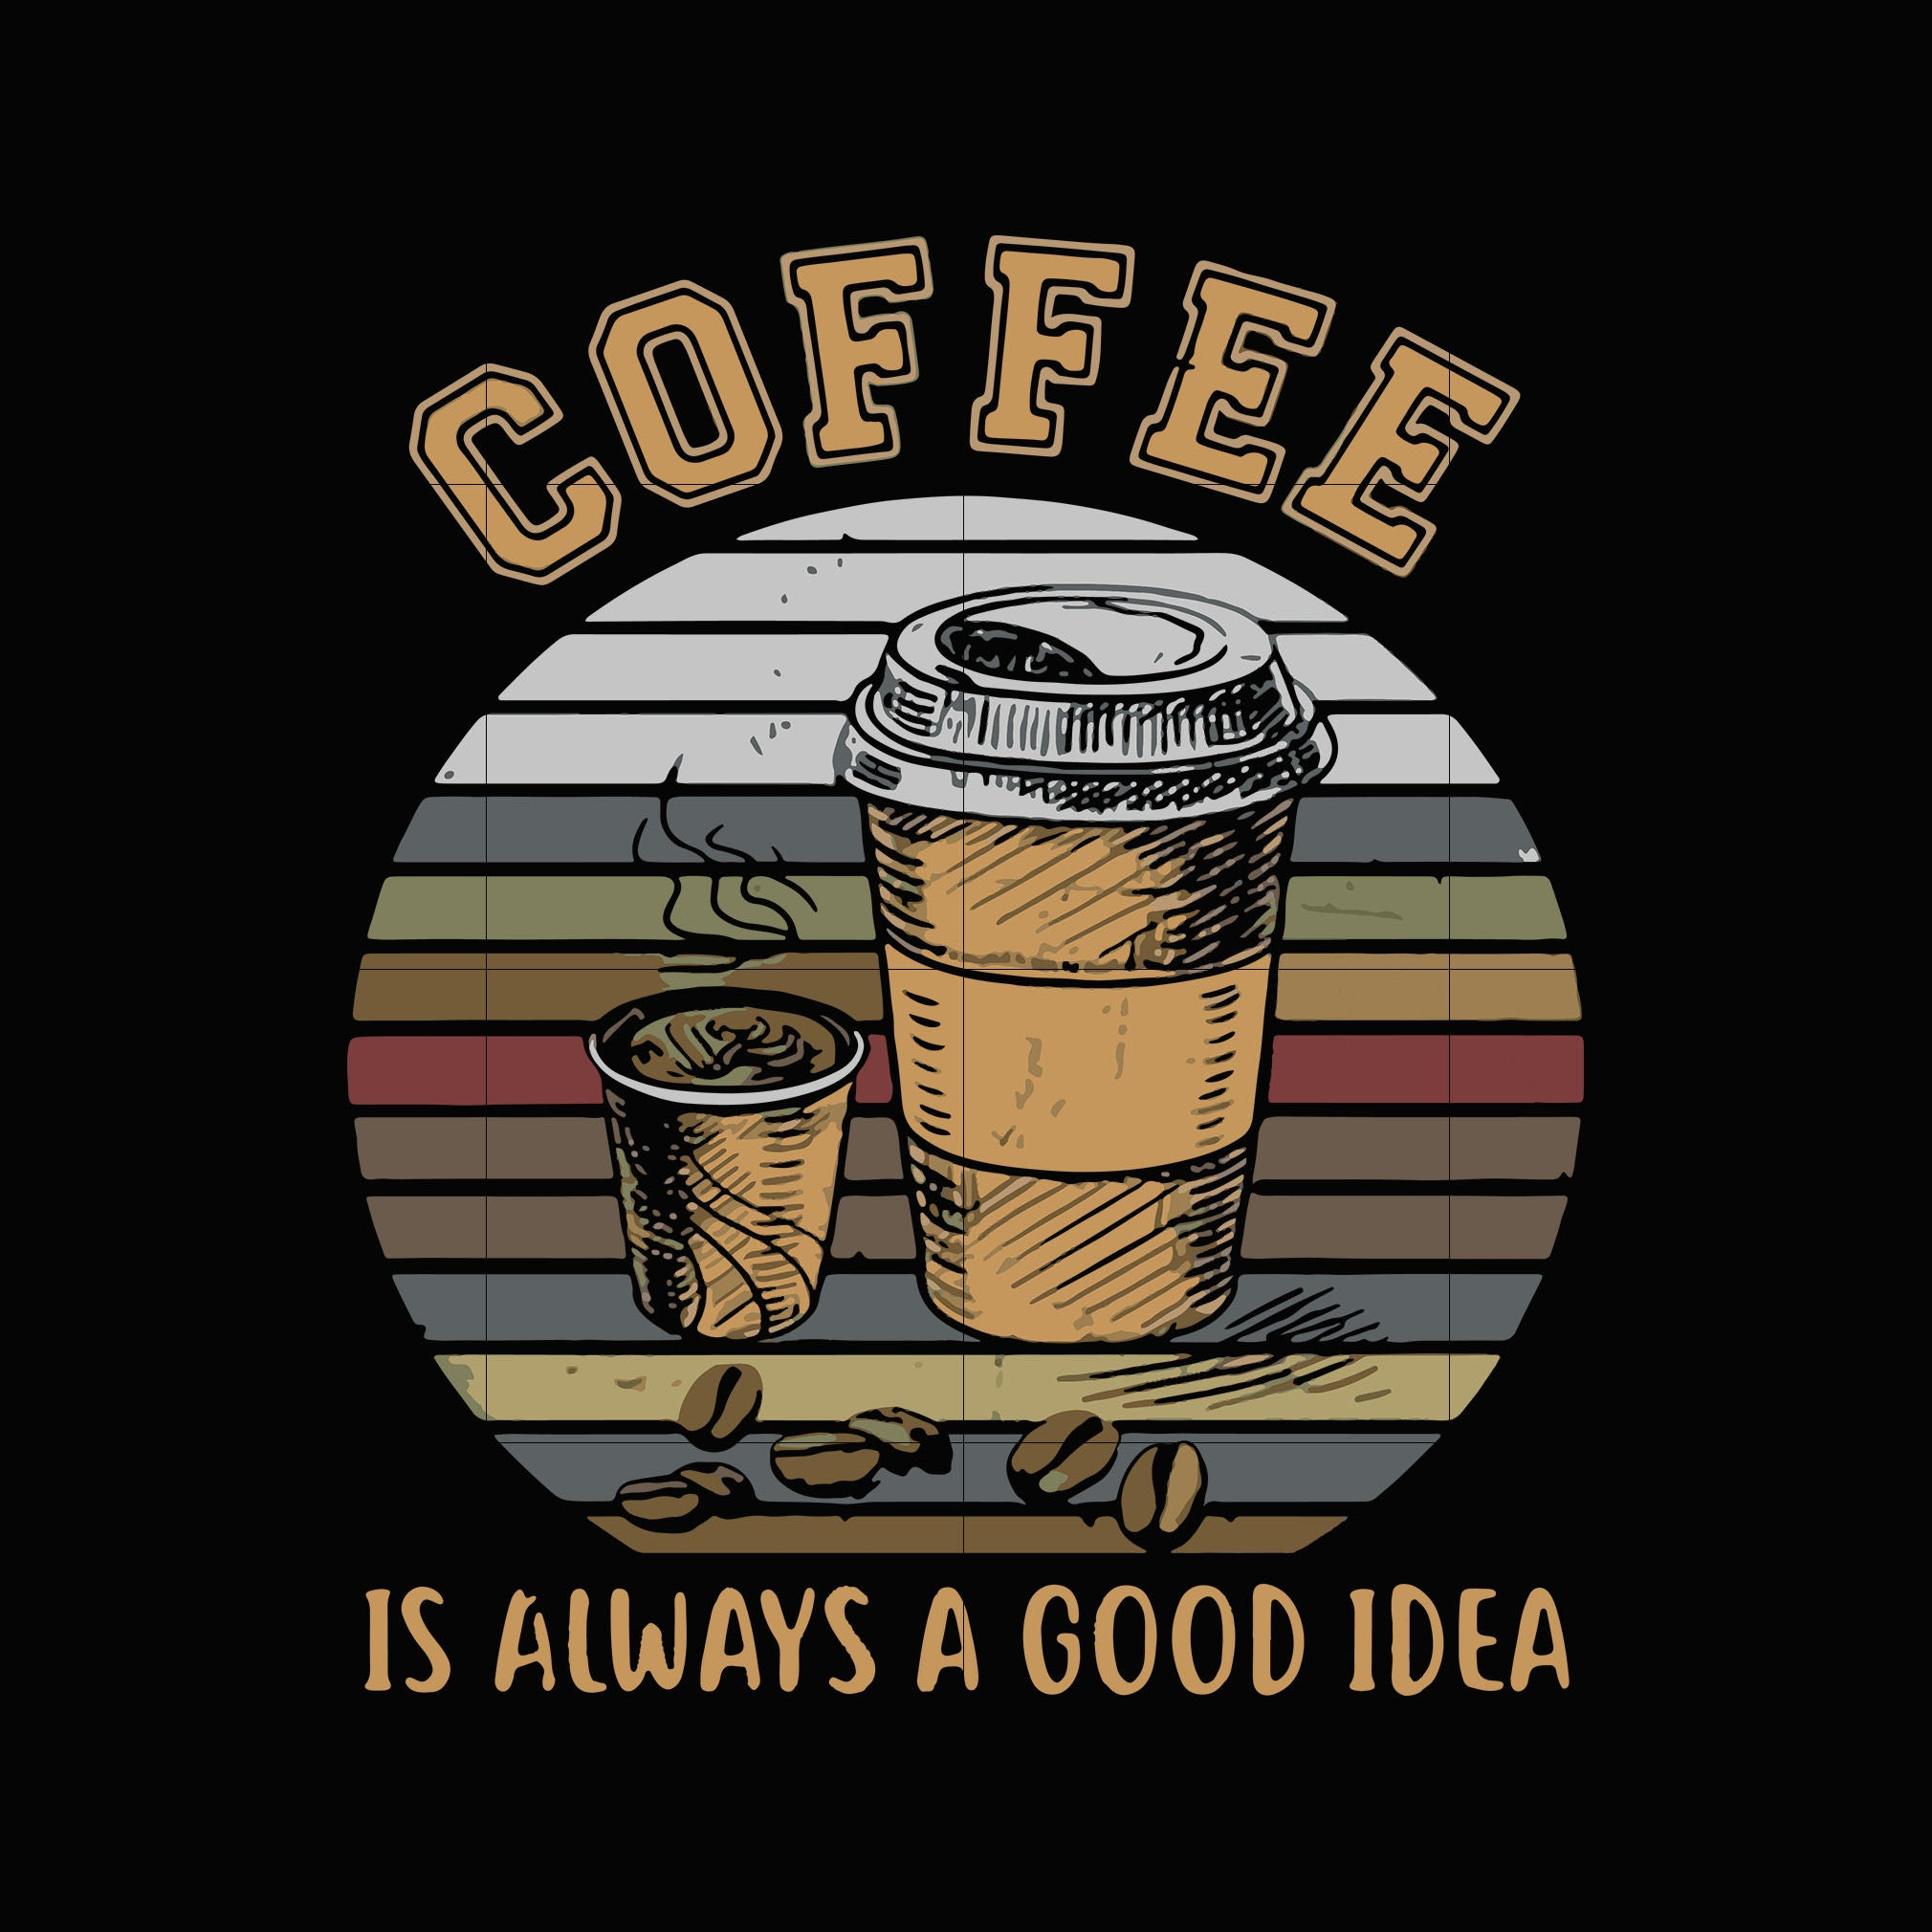 Coffee is always a good idea svg,dxf,eps,png digital file